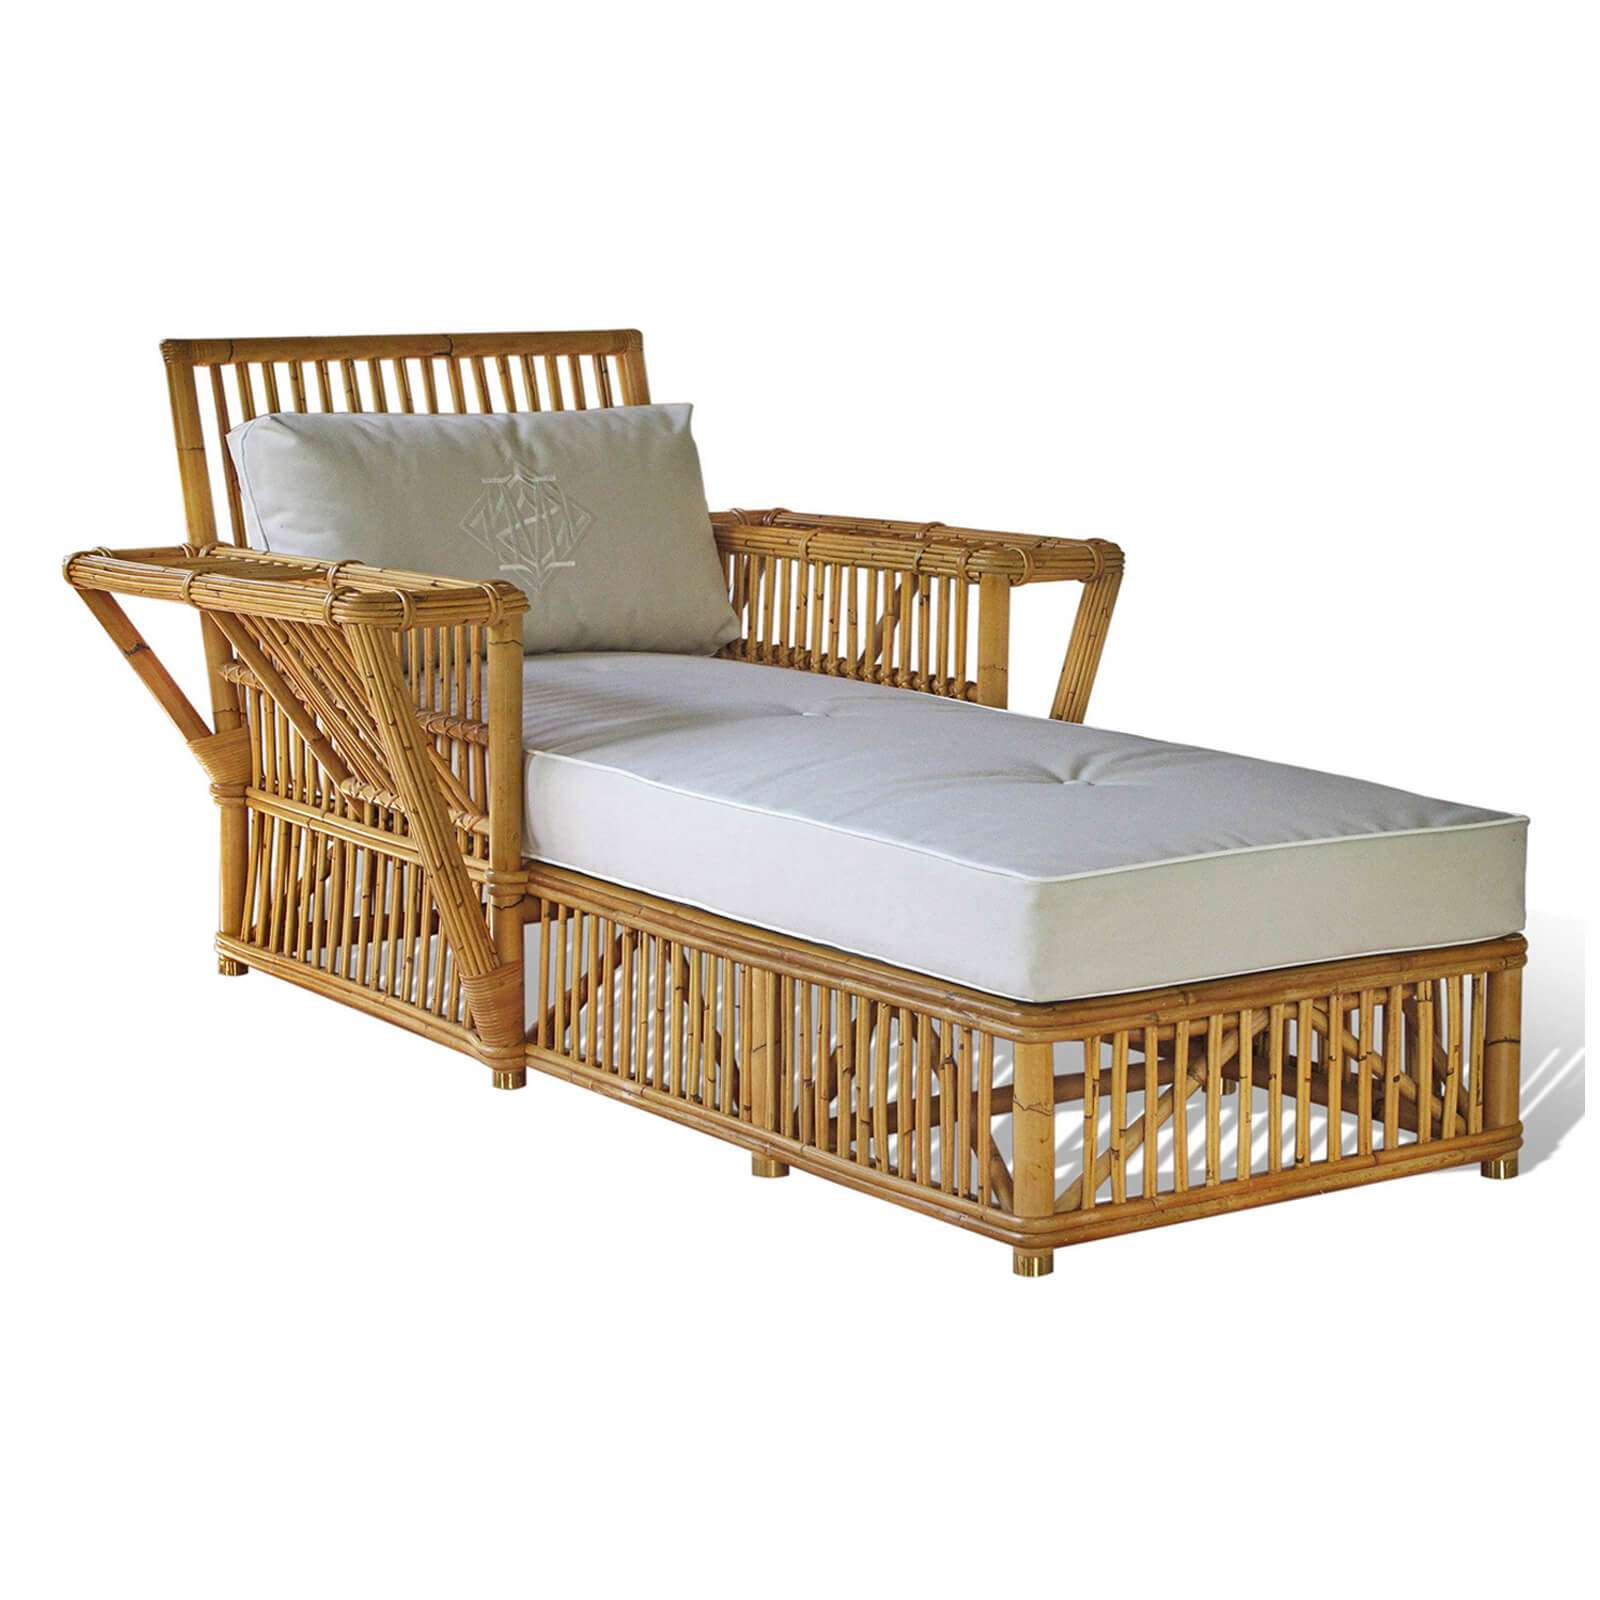 BUNGALOW DAYBED 1 - STUART MEMBERY HOME COLLECTION